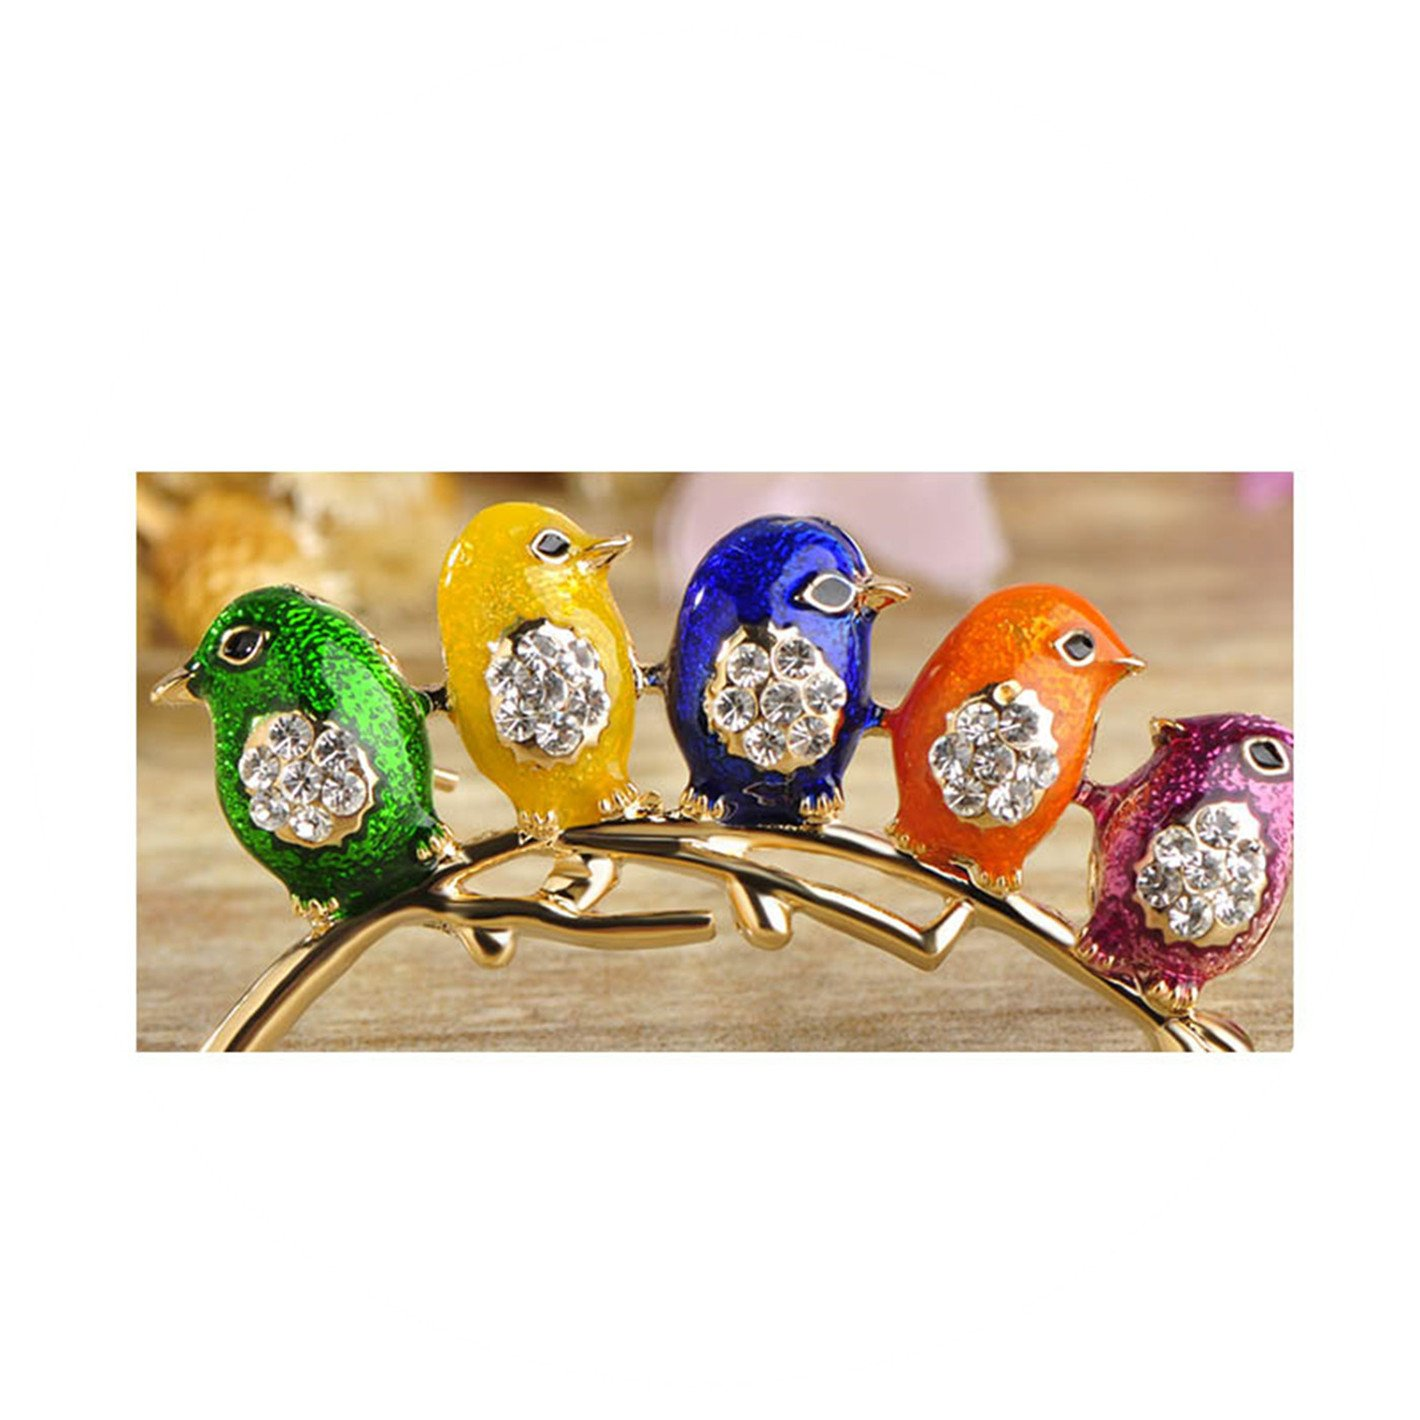 Colorful Five Birds Brooch with Crystal Rhinestones Collar Clip Dress Coat Decoration Animal Brooches for